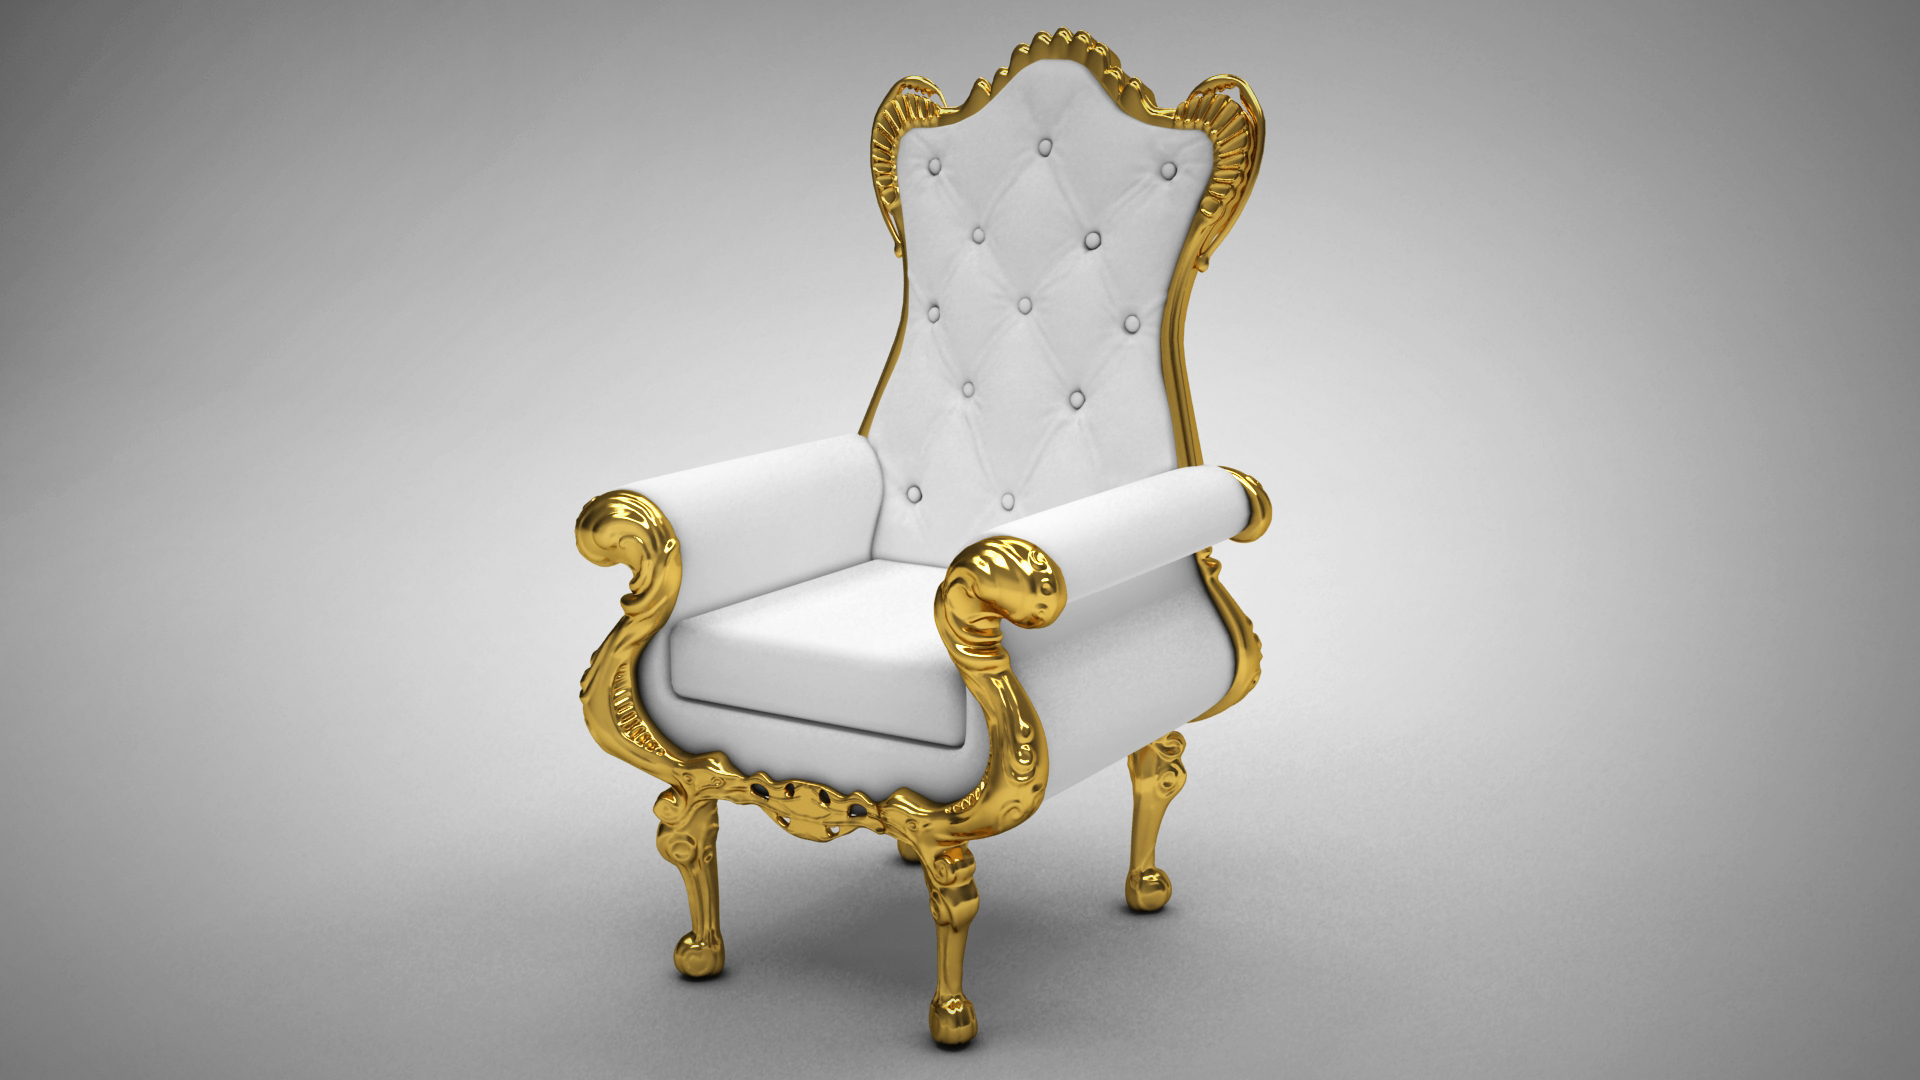 Beau Golden Chair 2 By Rofhiwa Golden Chair 2 By Rofhiwa